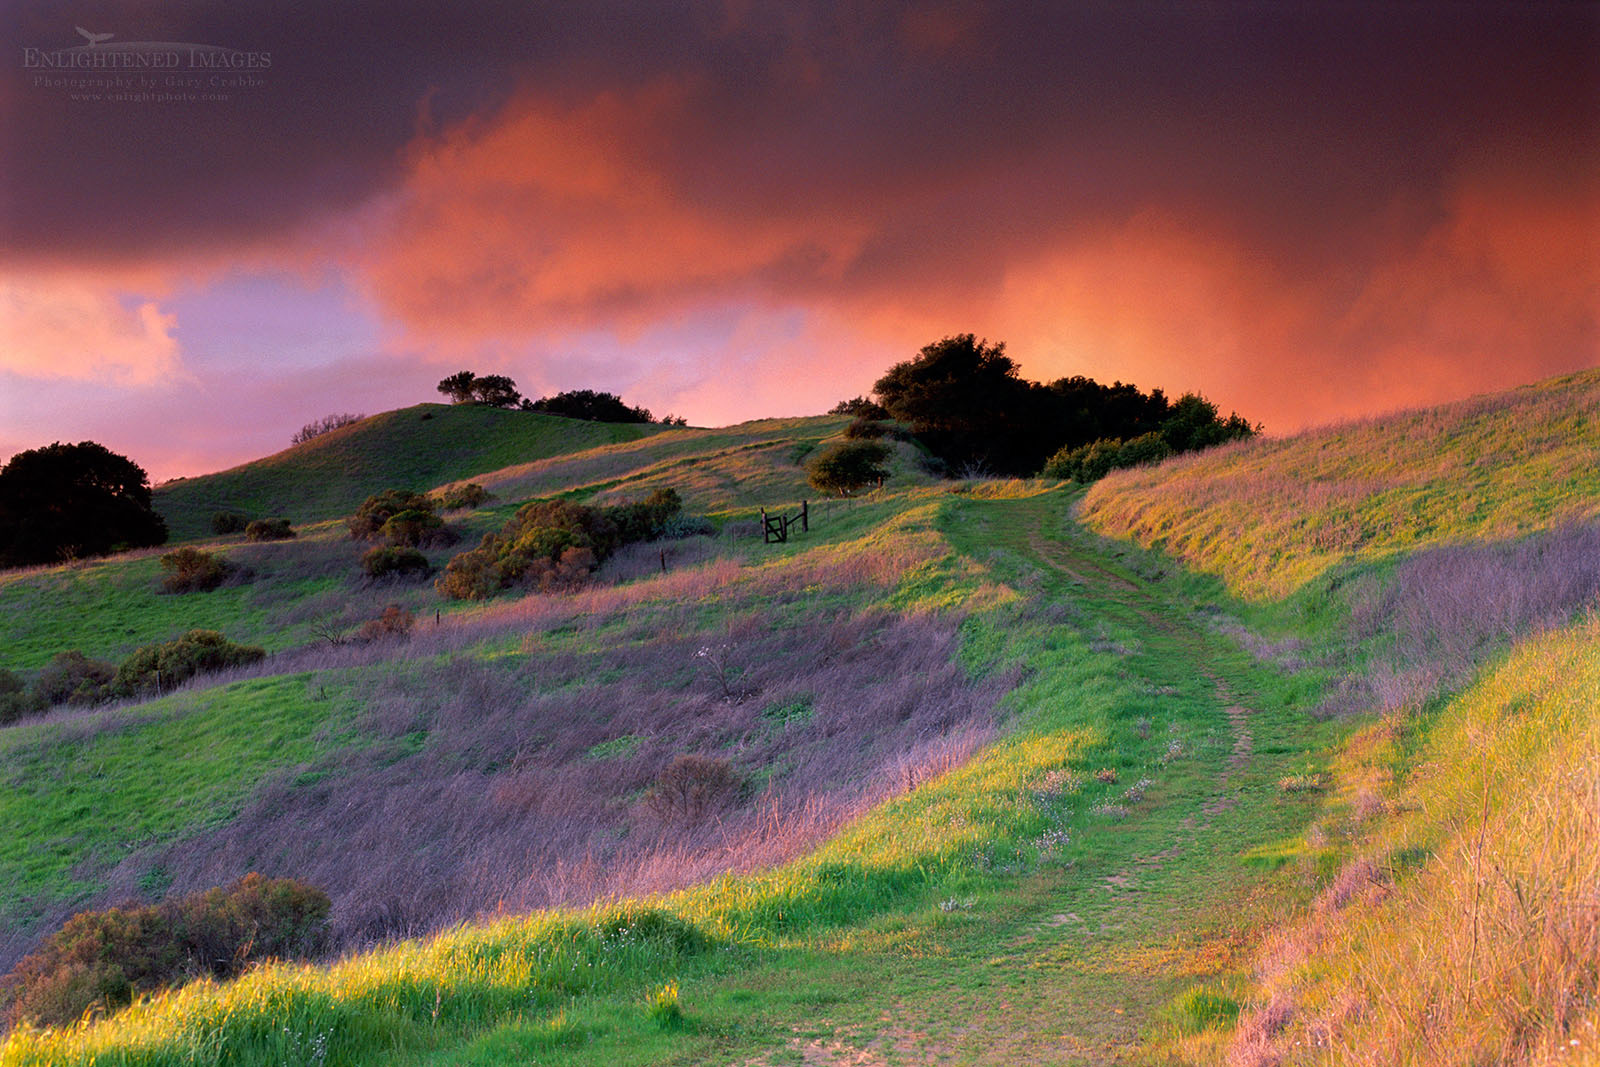 Photo: Stormy sunset in the hills above Lafayette Contra Costa County, California